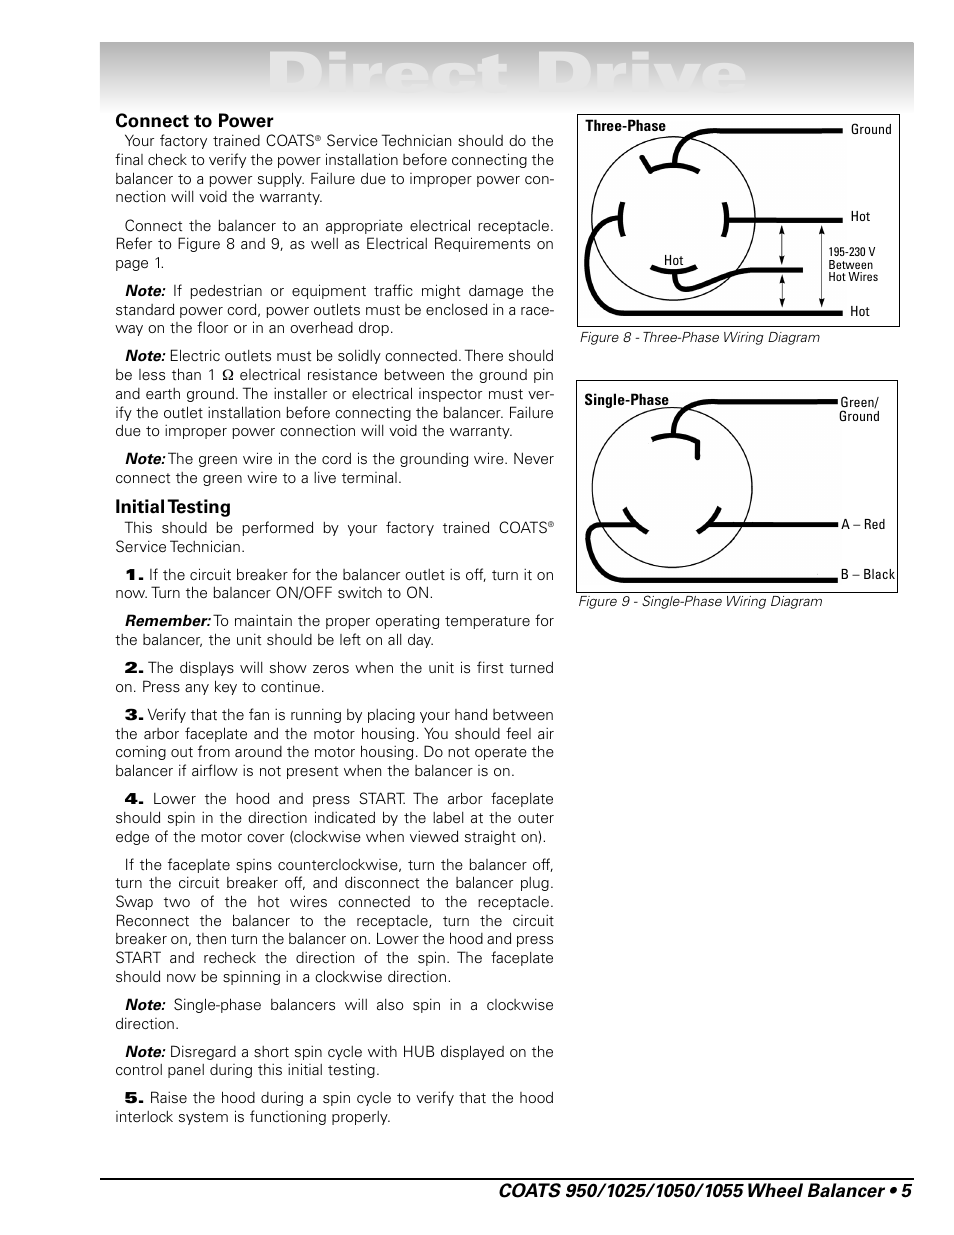 coats 1055 balancer page11 direct drive coats 1055 balancer user manual page 11 24 powercon wiring diagram at edmiracle.co